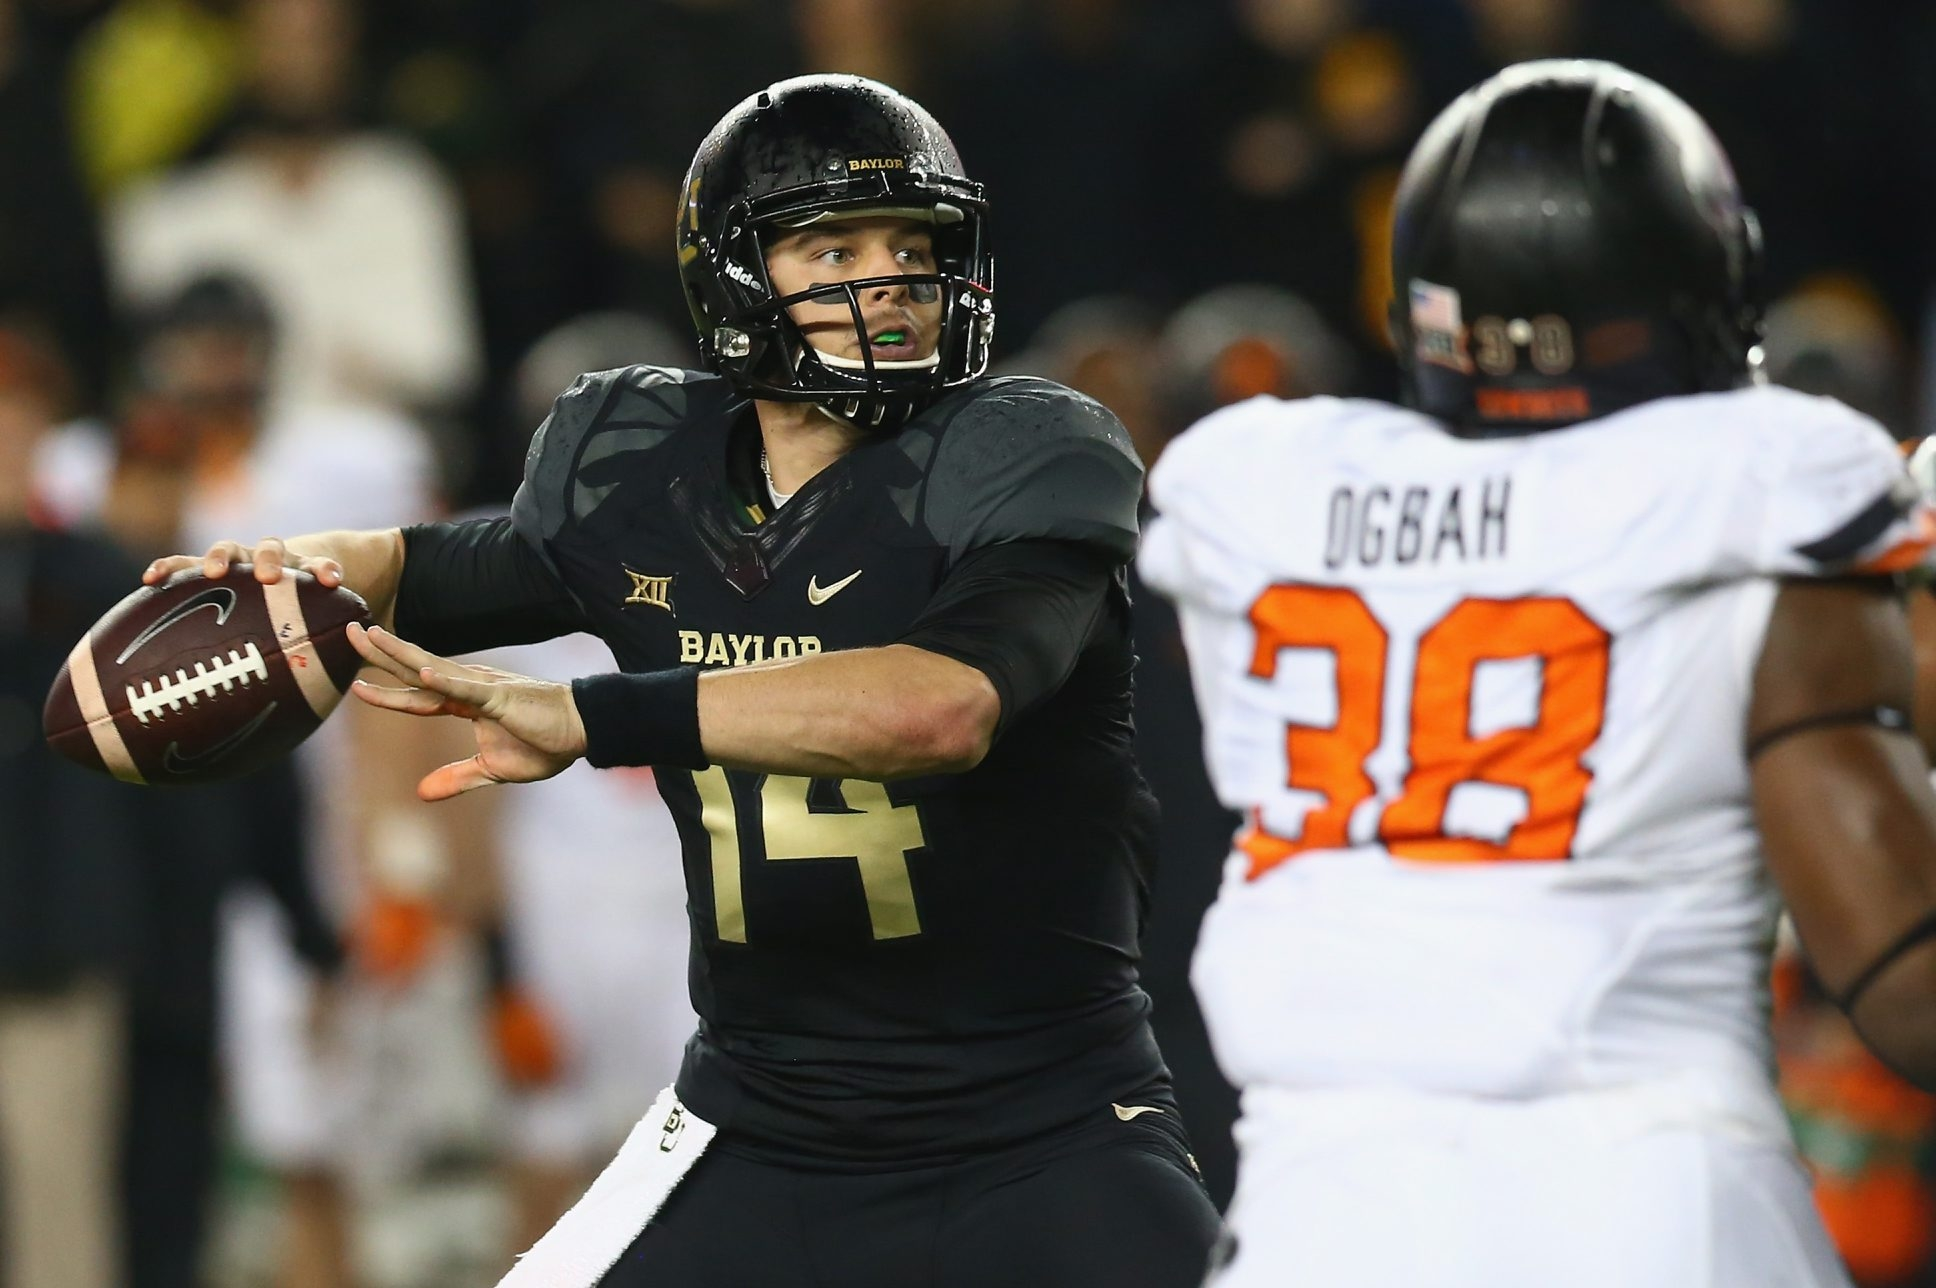 Bryce Petty led a high-powered Baylor offense to the top 10 of the polls last season. How would he look in a Bills' uniform in the 2015 season?